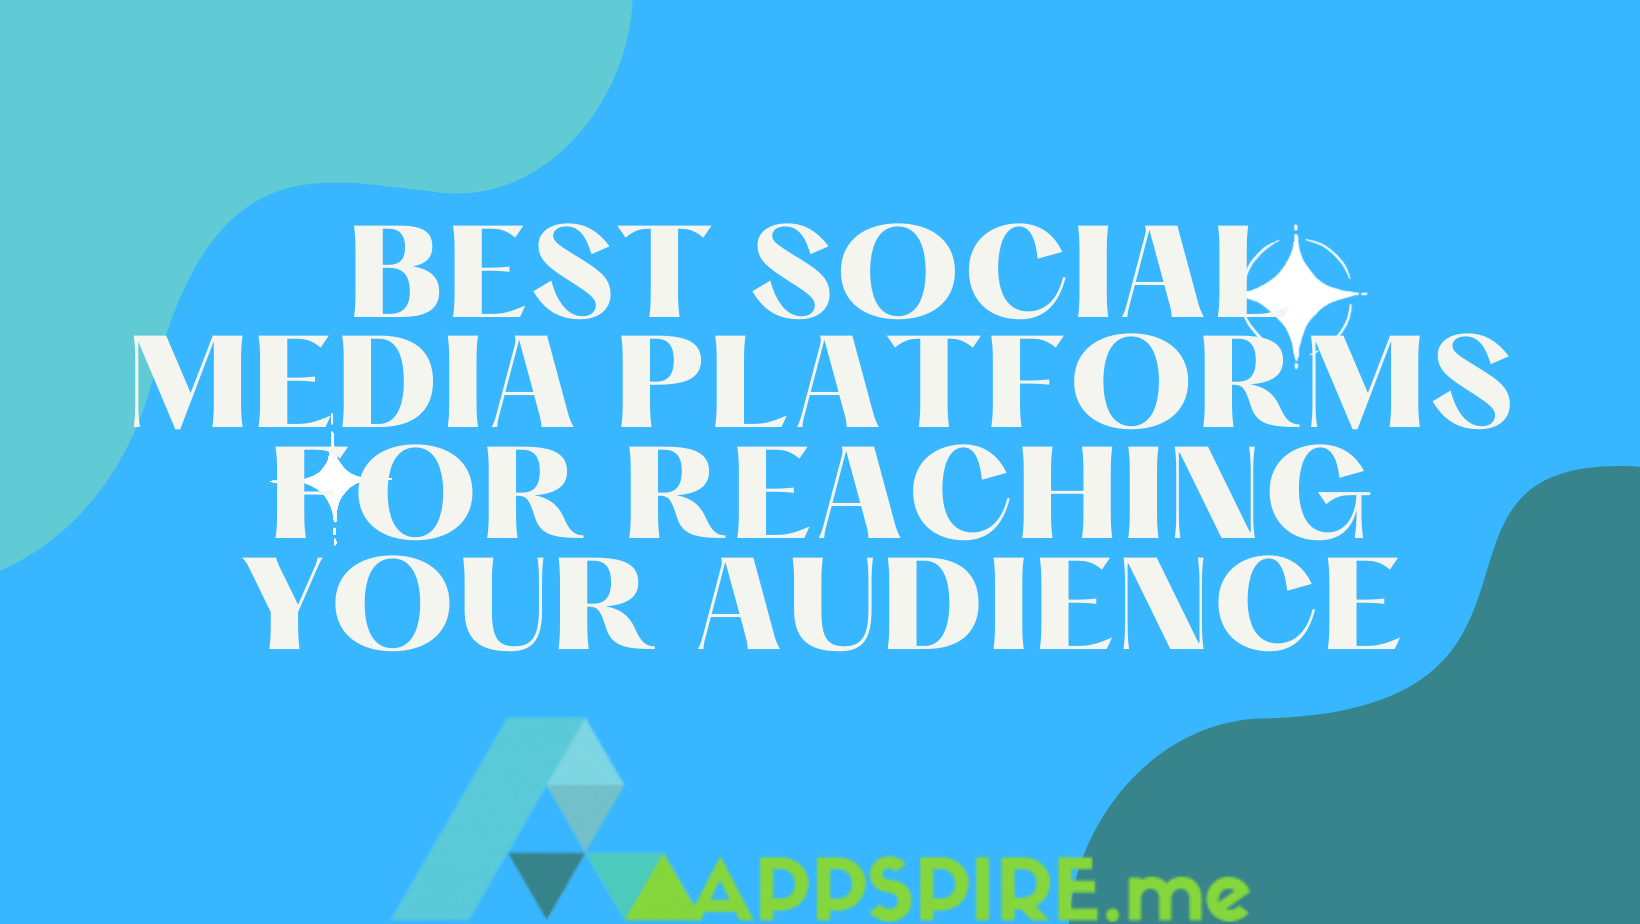 Best Social Media Platforms For Reaching Your Audience